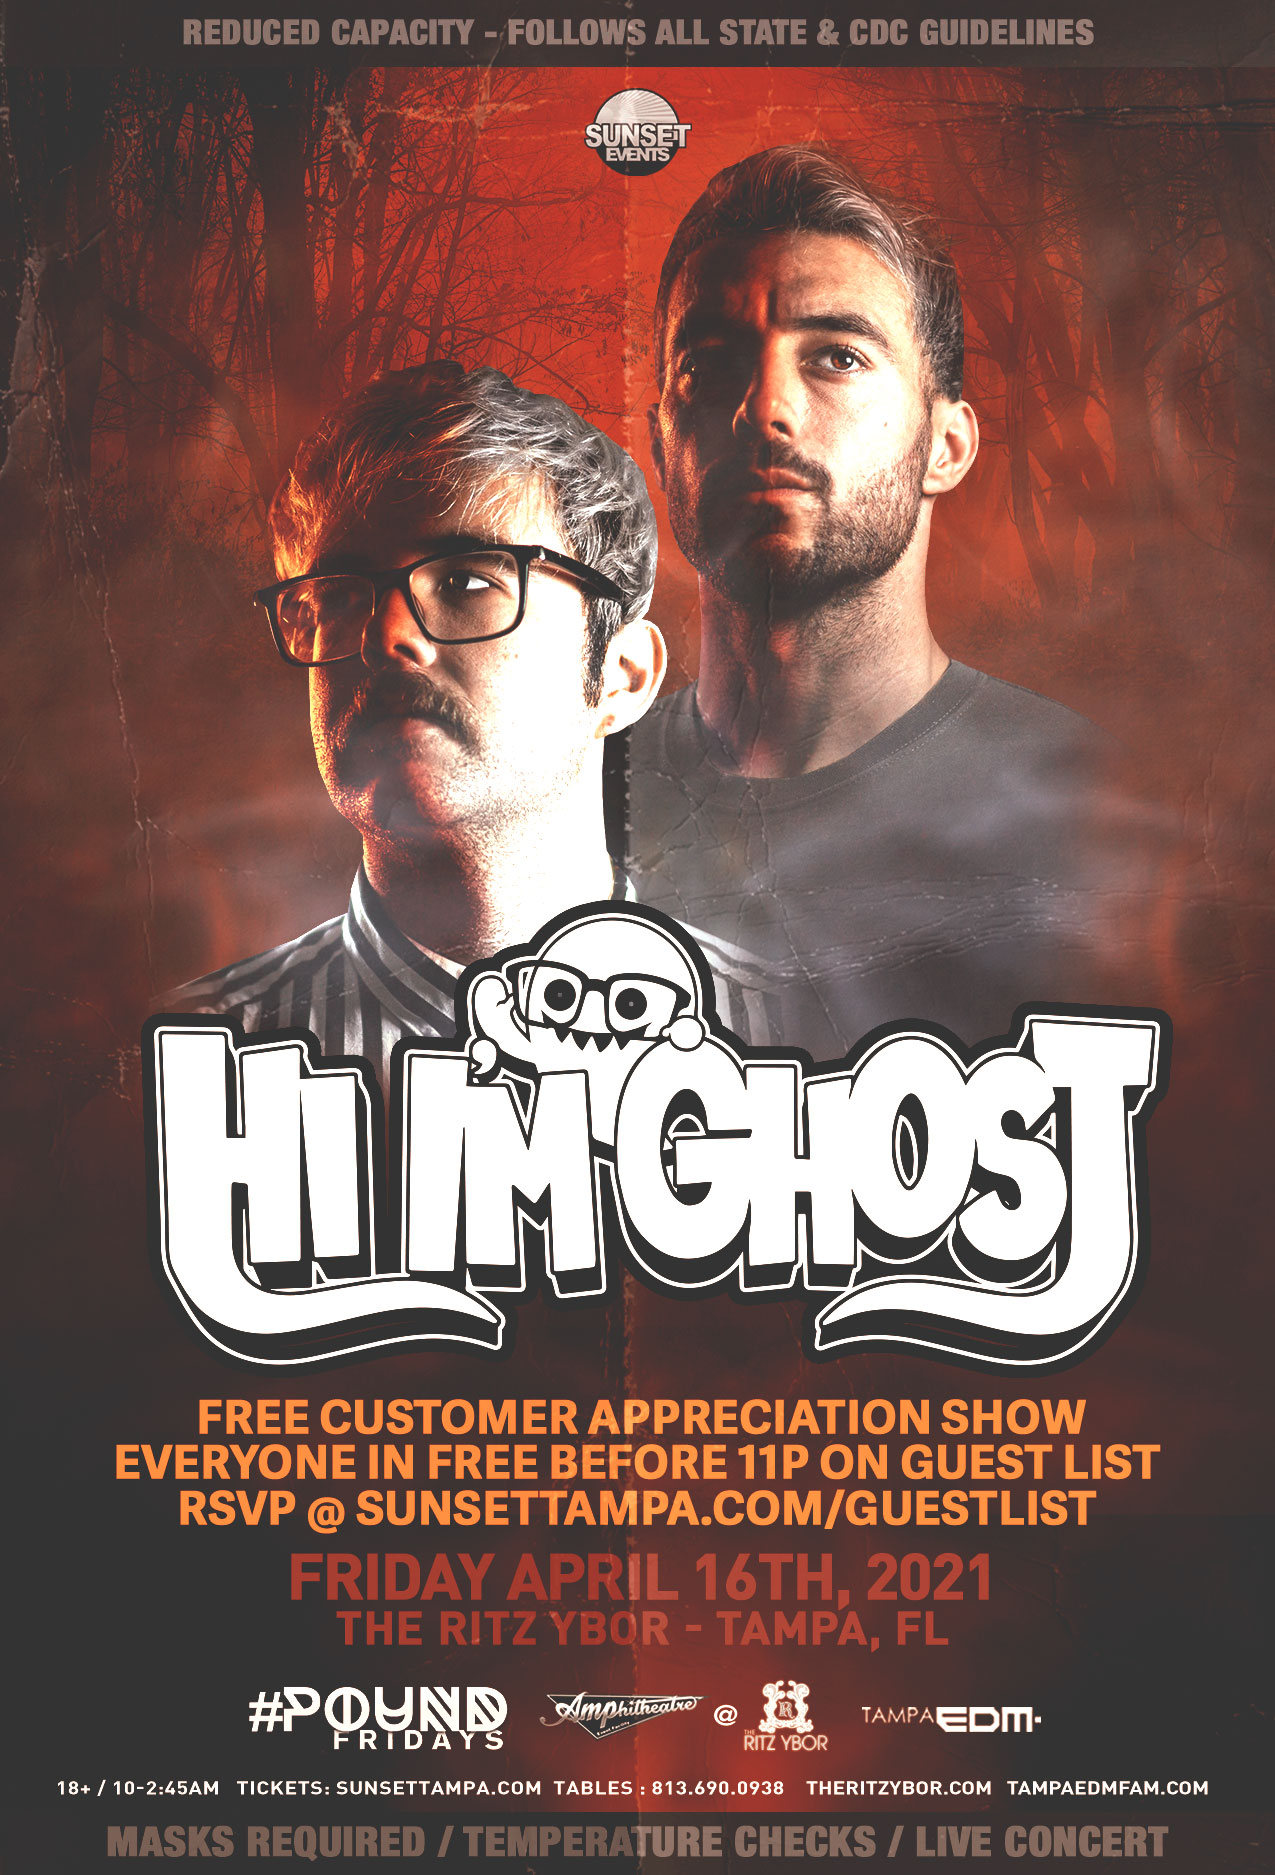 Hi I'm Ghost for #POUND Fridays at The RITZ Ybor – 4/16/2021